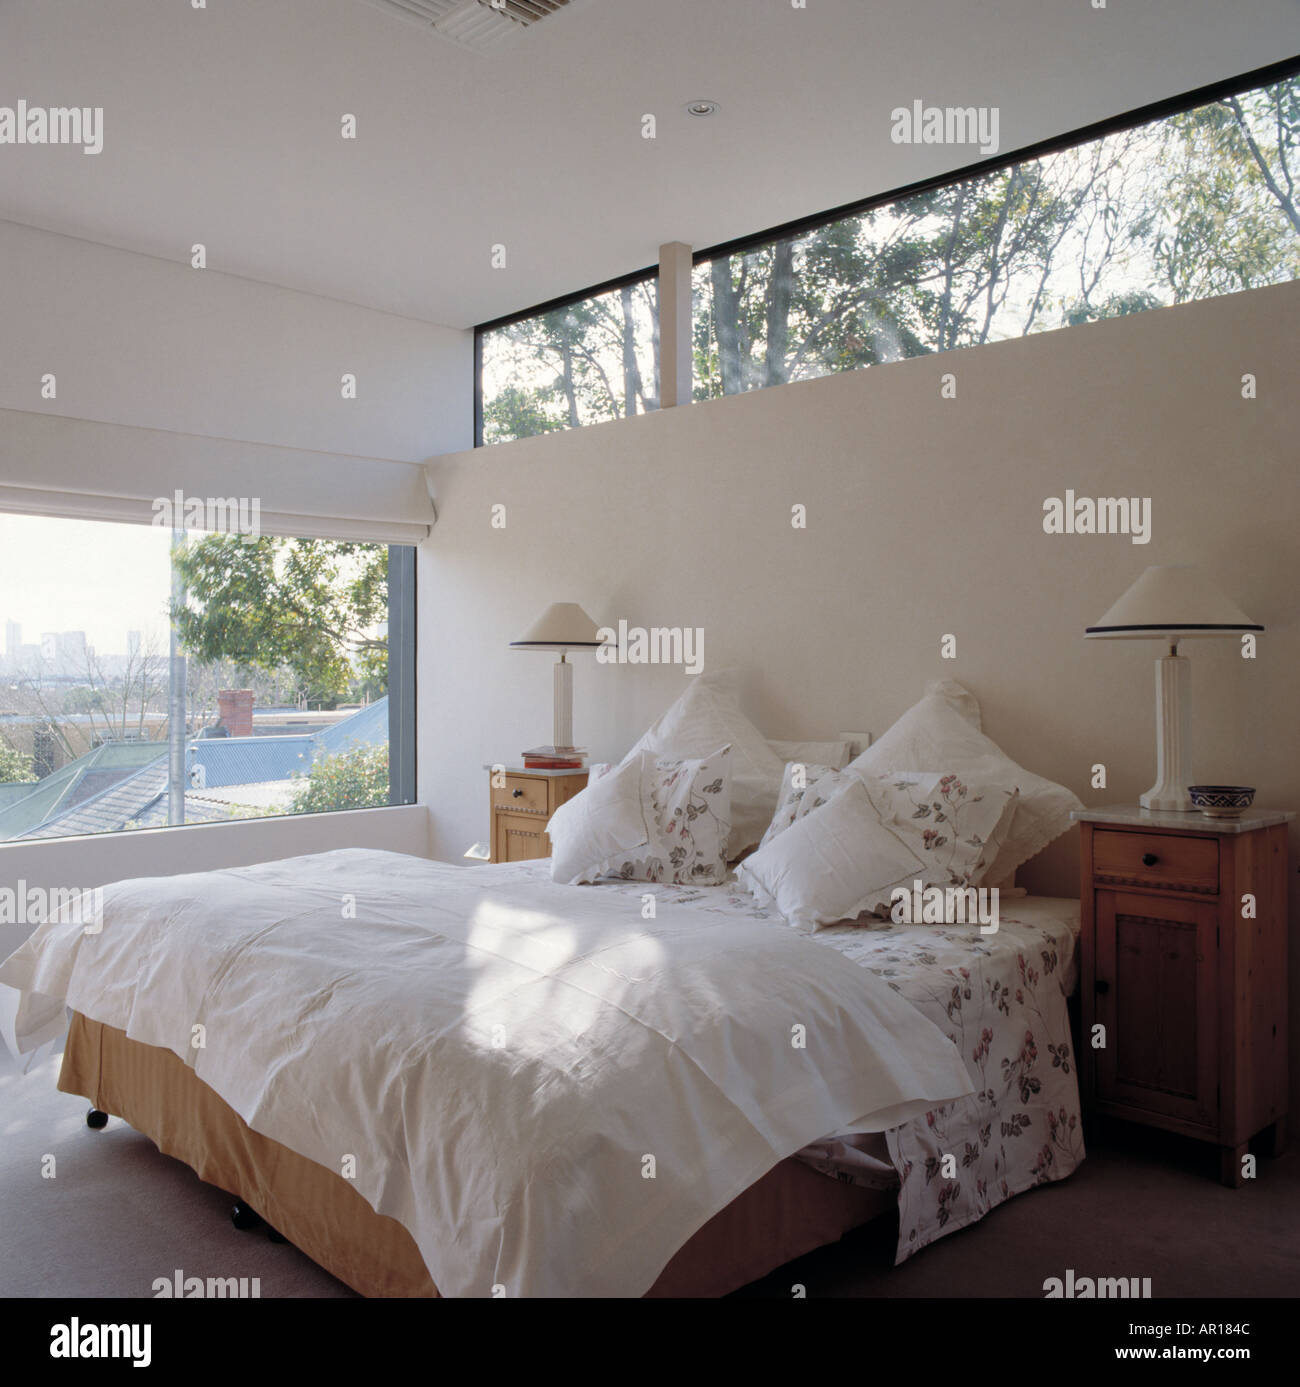 Narrow Window Above Bed With White Pillows And Quilt In Light And Stock Photo Royalty Free